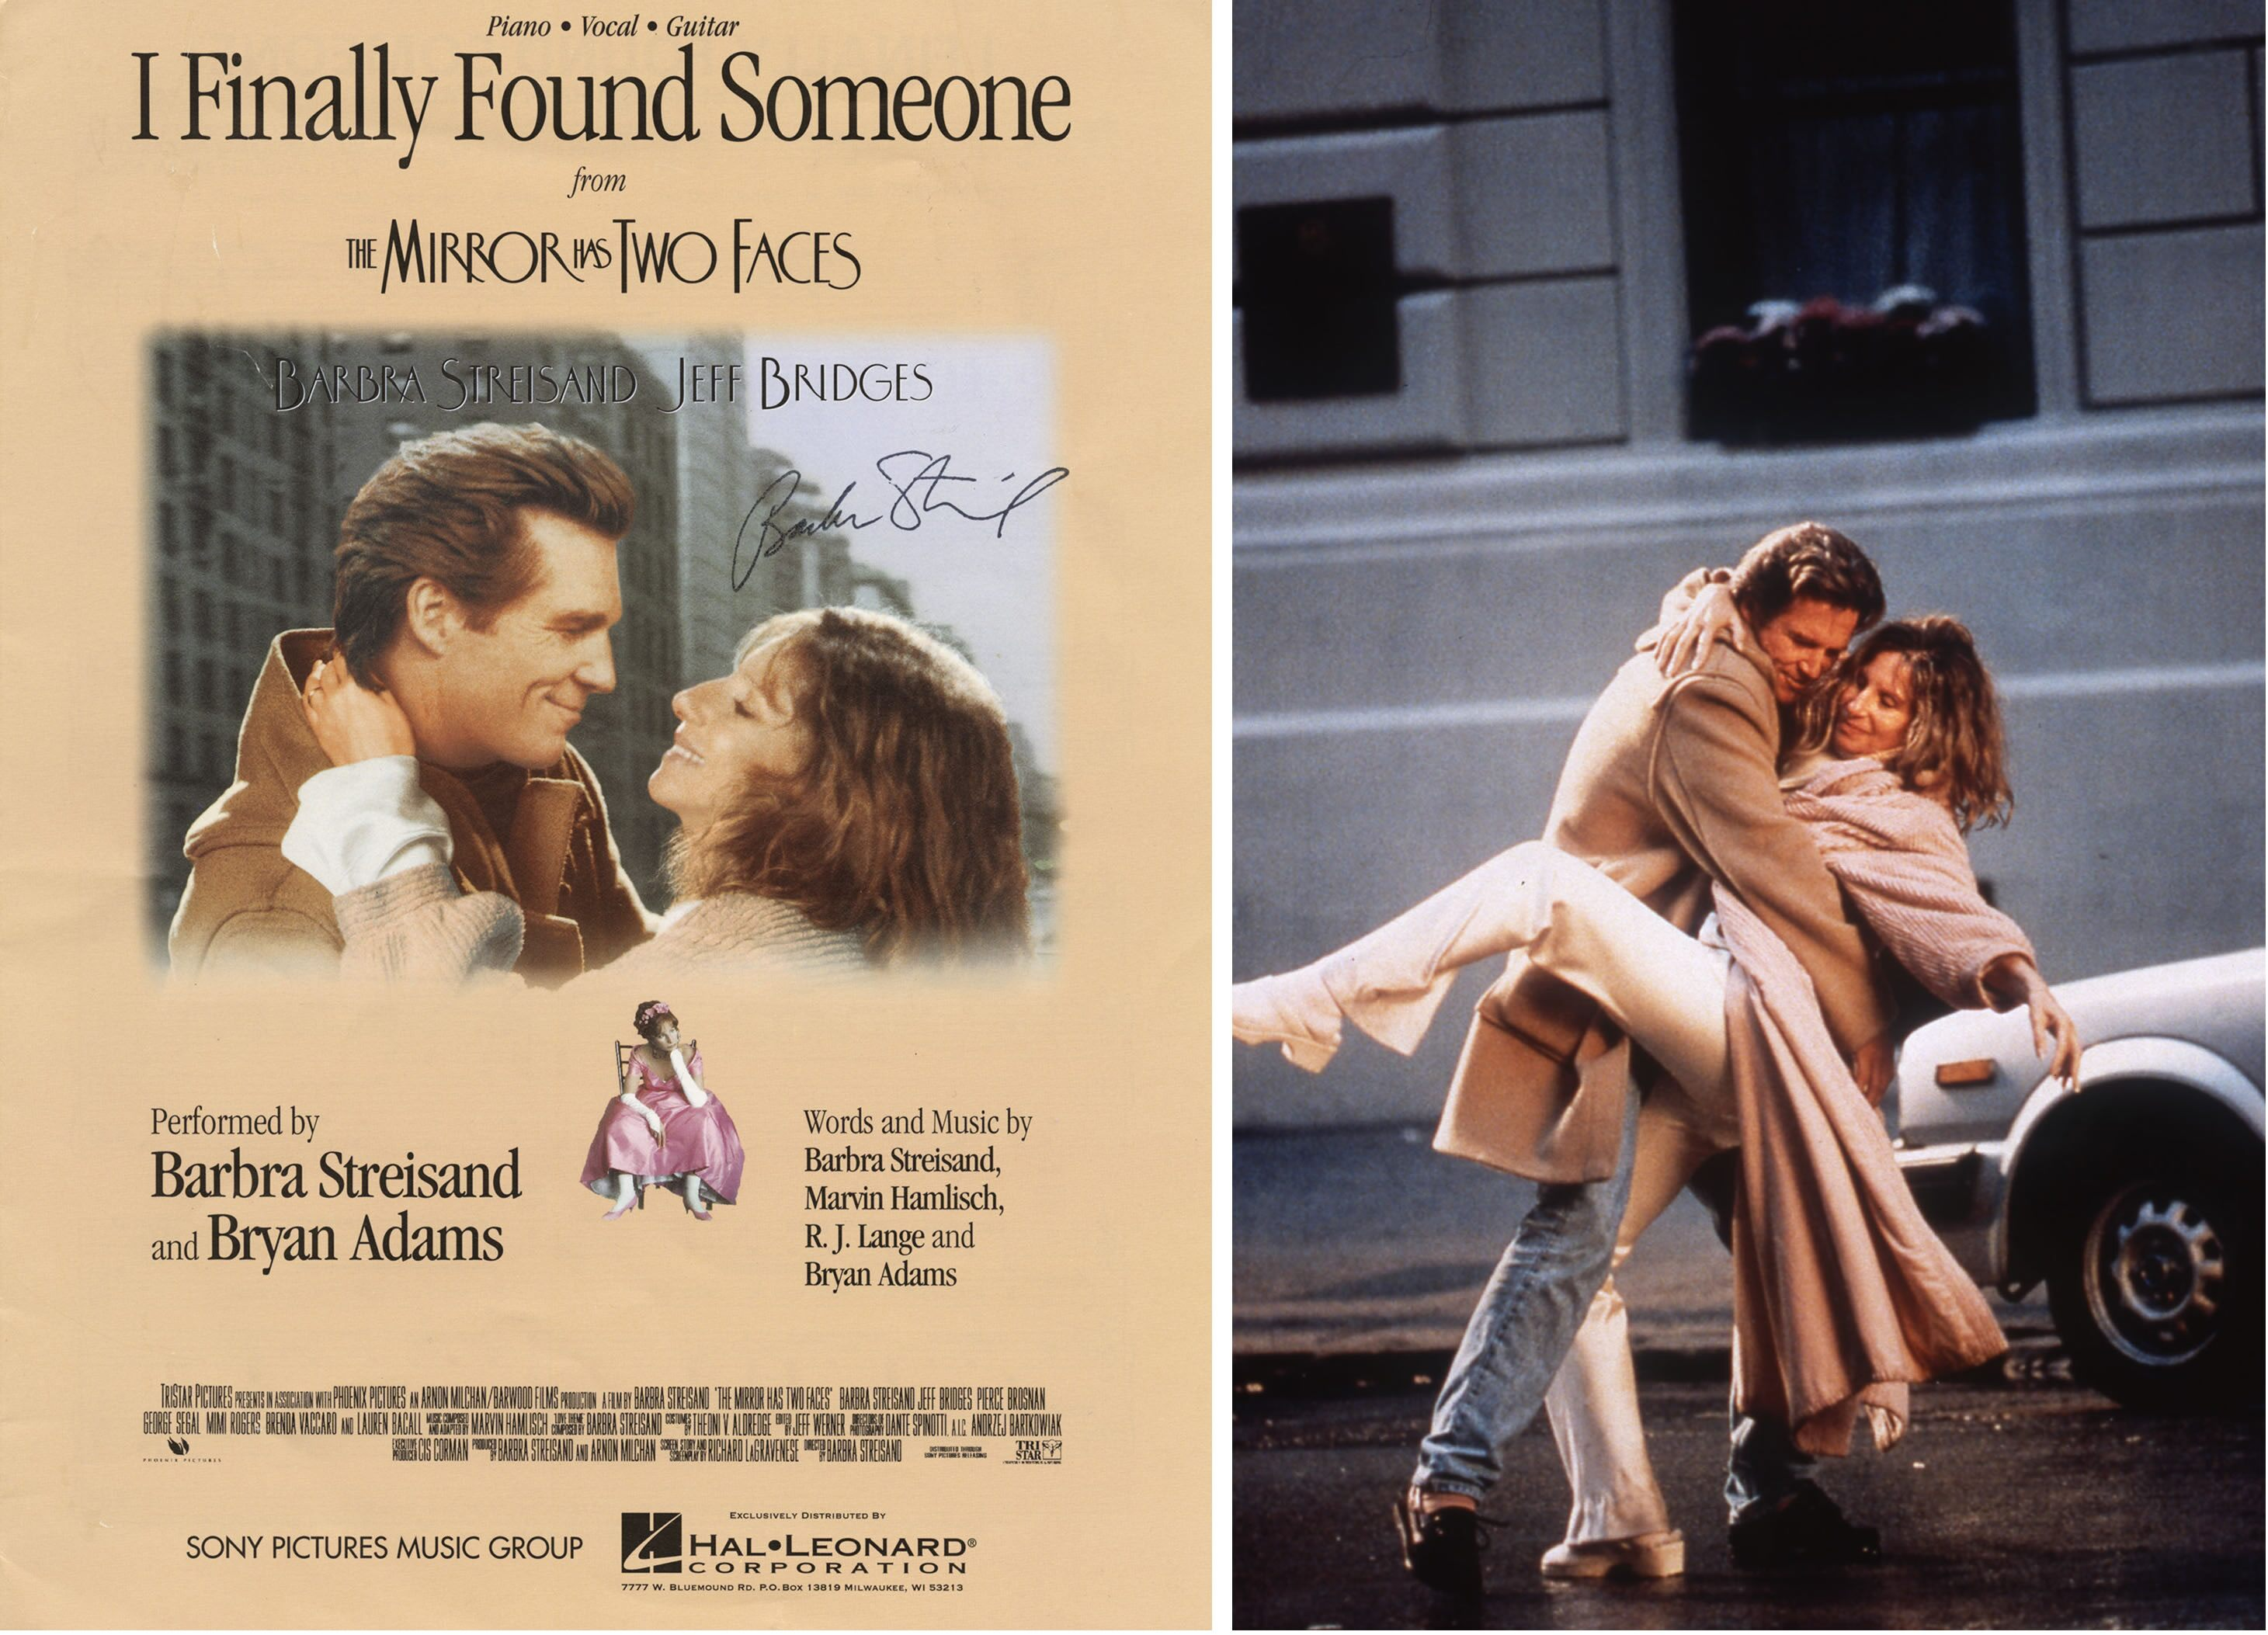 Jeff Bridges and Barbra Streisand; music by Marvin Hamlisch